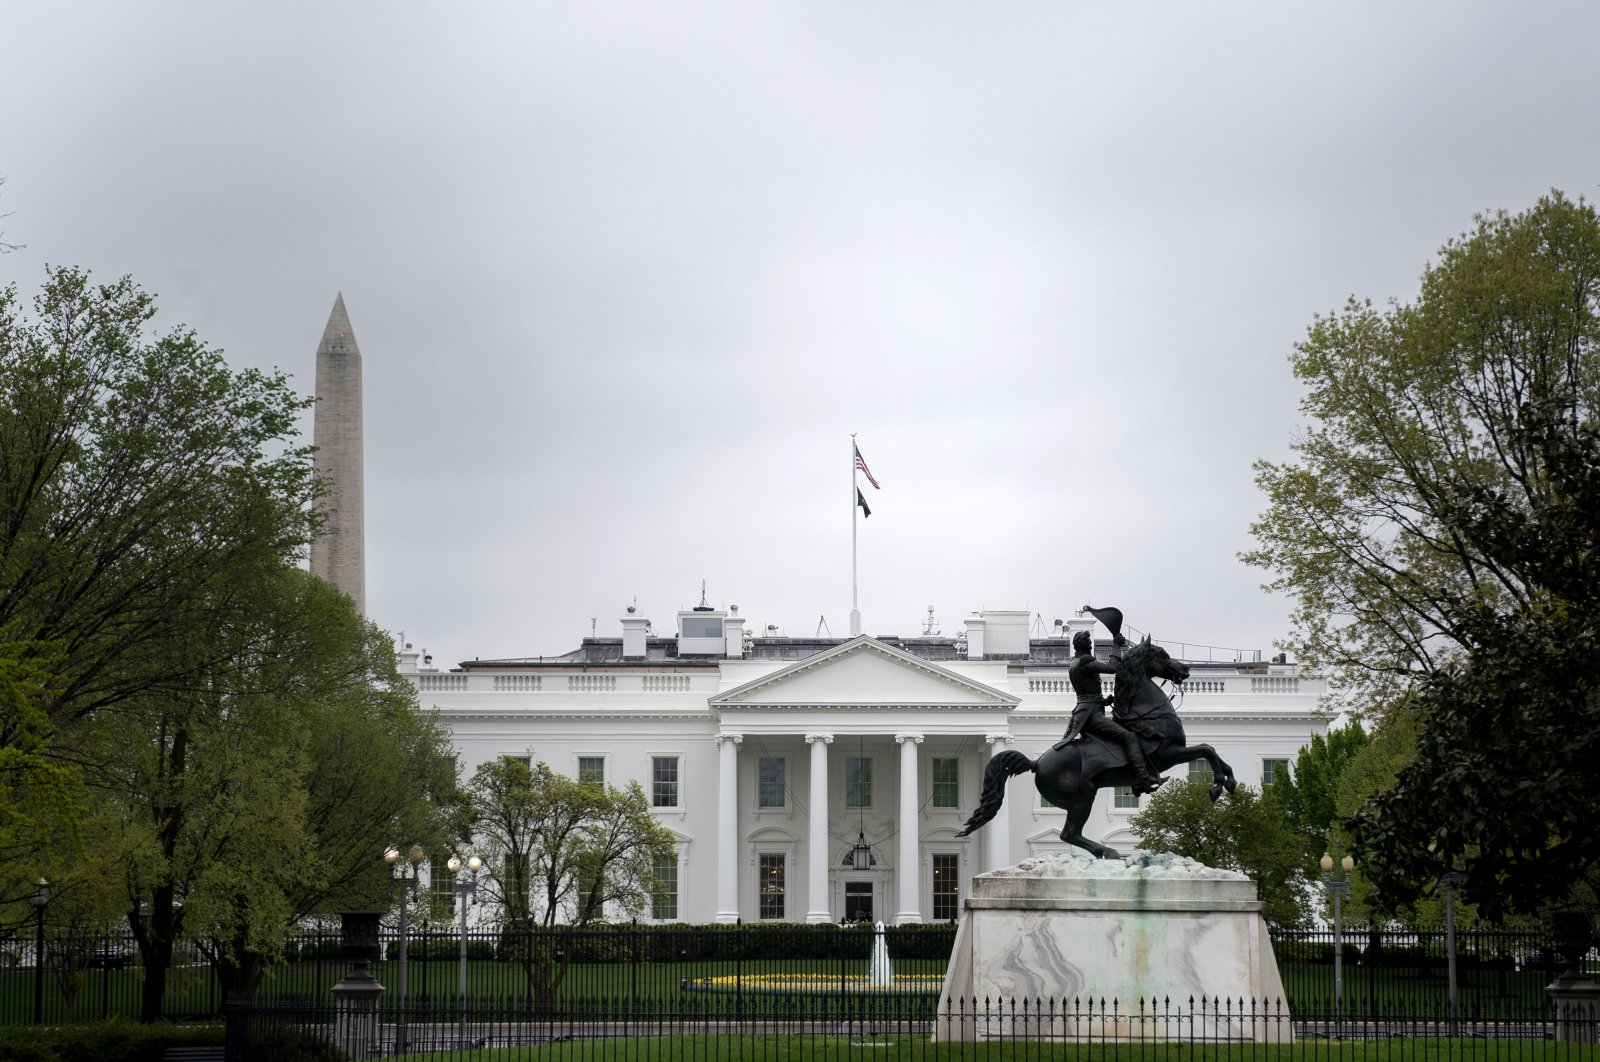 A view of the White House in Washington, D.C., U.S., April 9, 2021. (Photo by Getty Images)